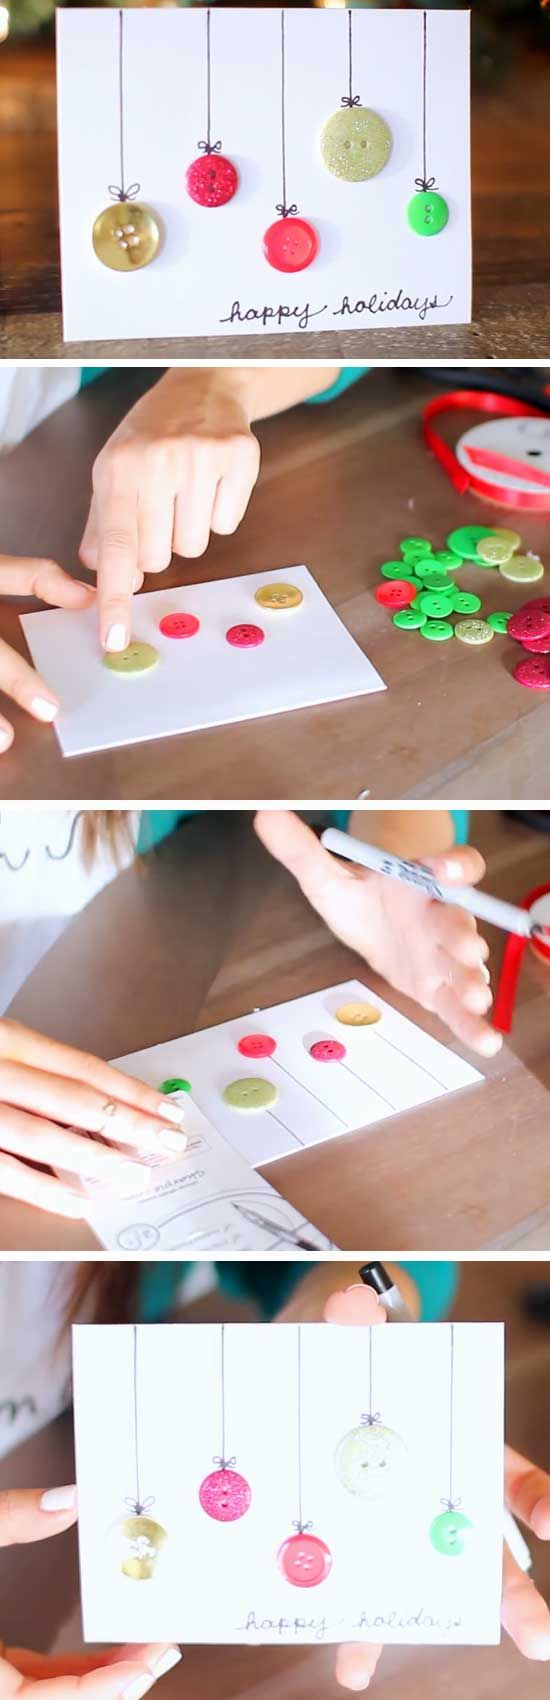 simple button ornament Christmas card video tutorial